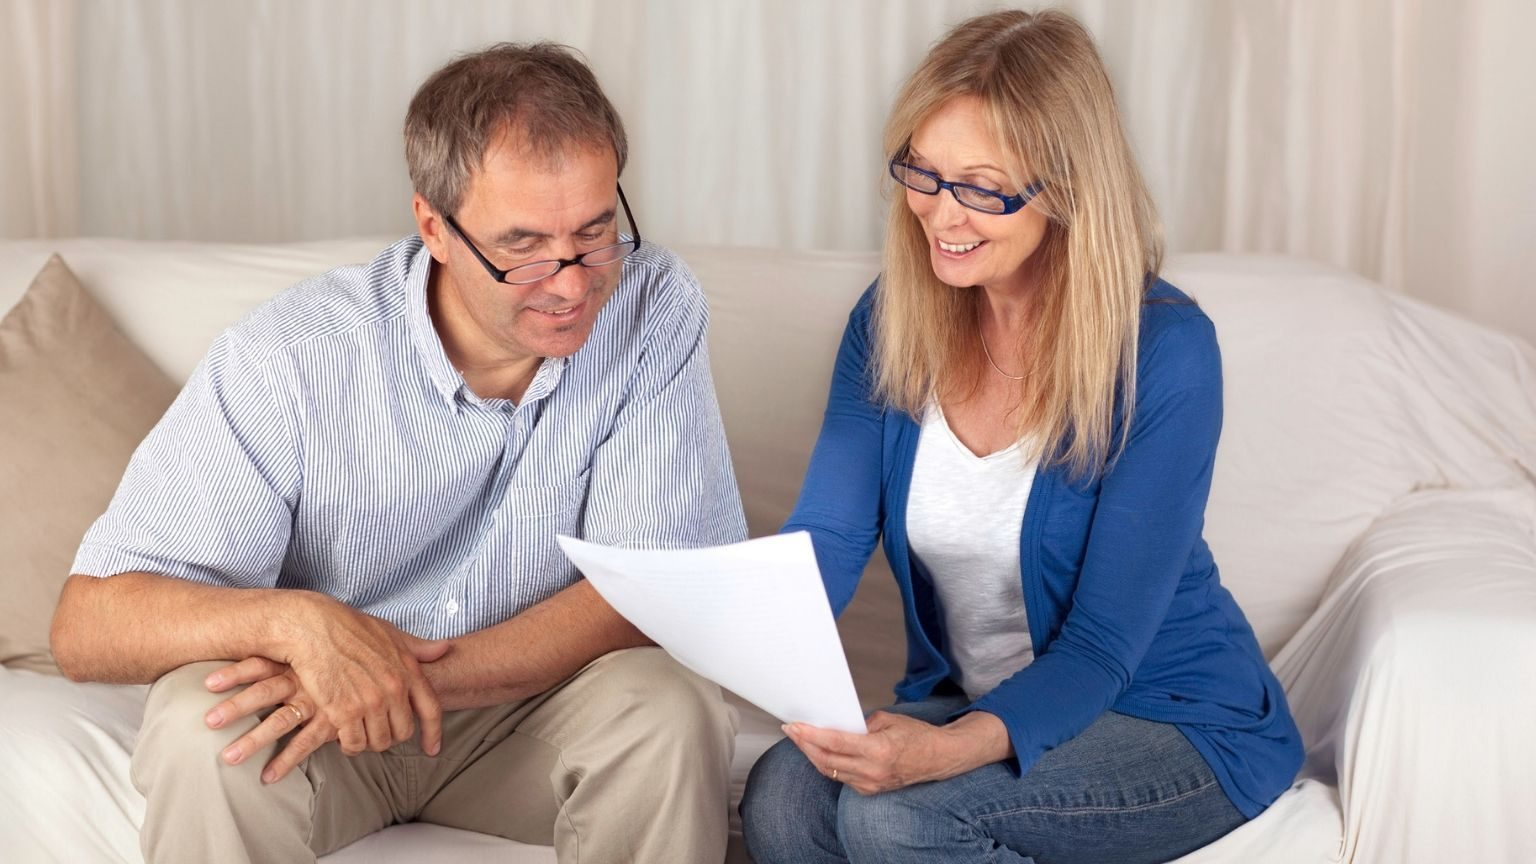 Mature couple sat on couch checking a form